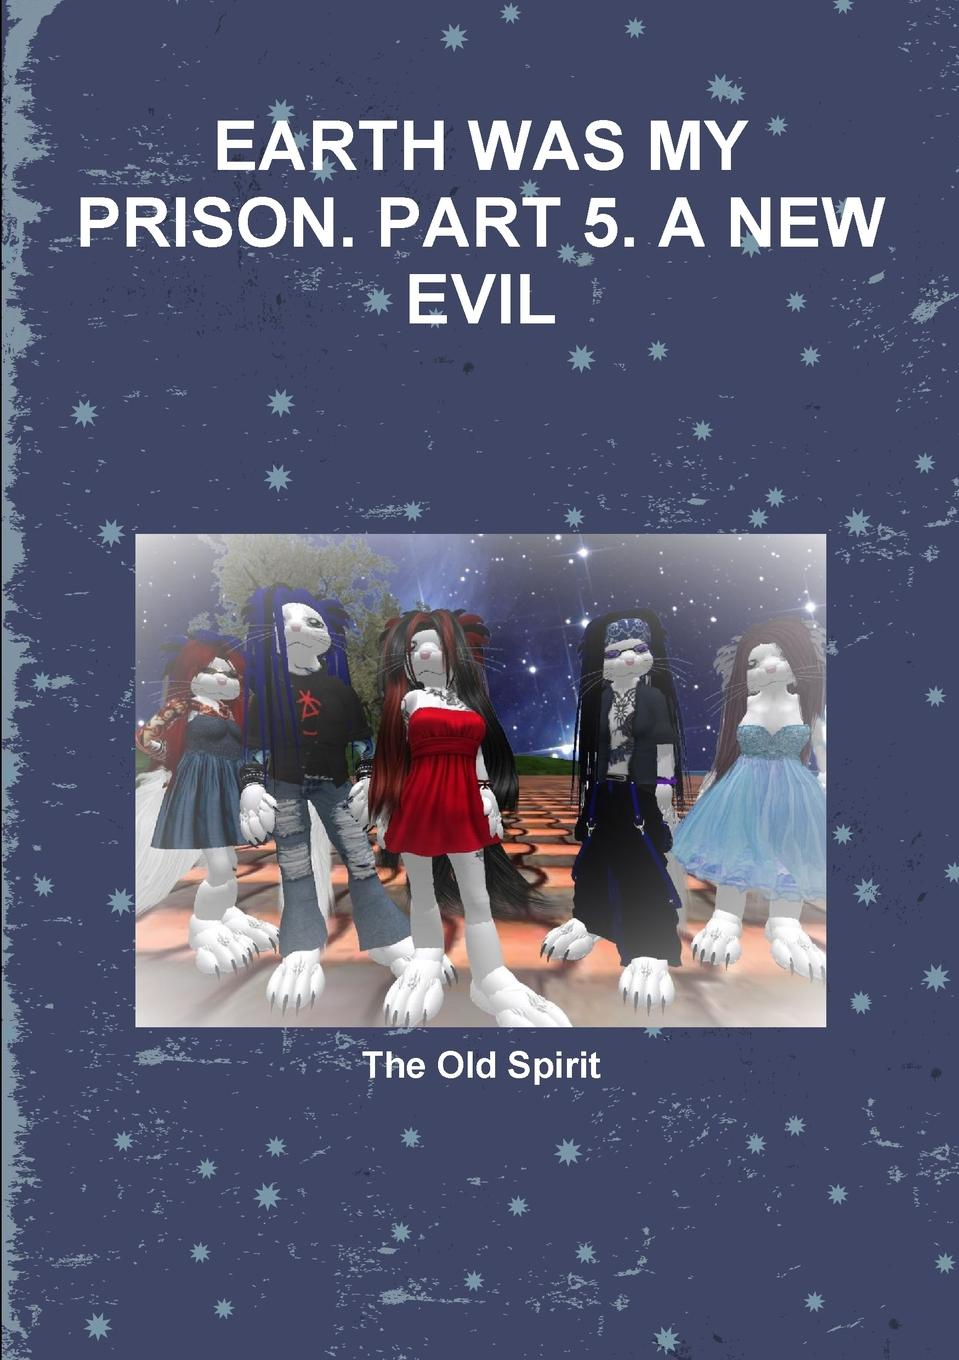 The Old Spirit EARTH WAS MY PRISON. PART 5. A NEW EVIL who was maurice sendak